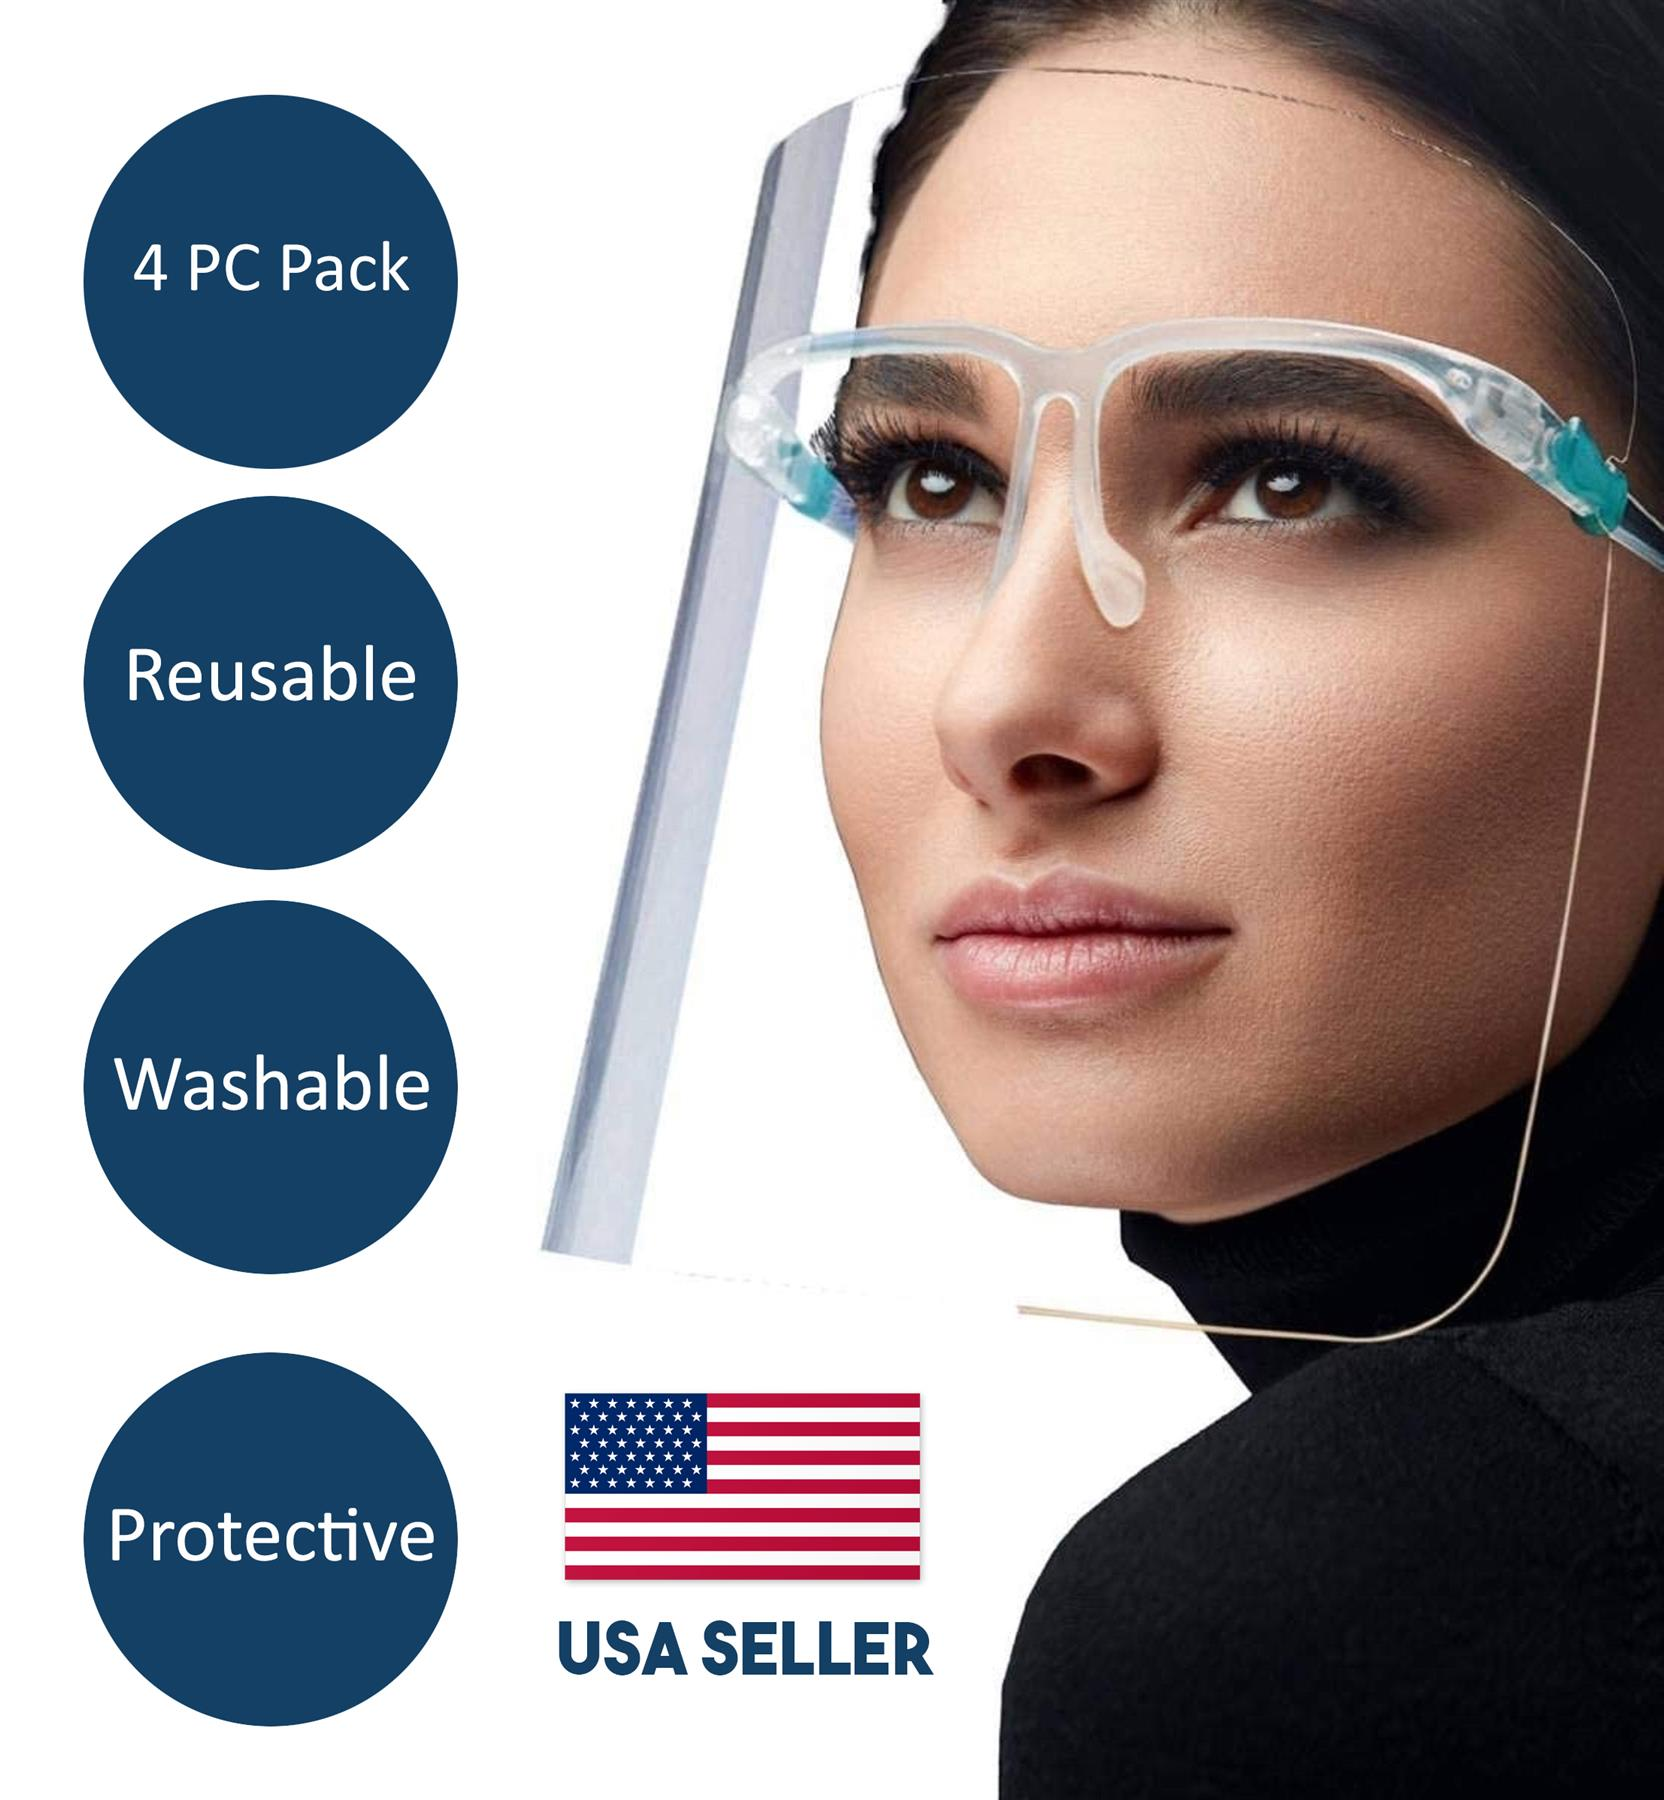 6 PC Unisex Reusable Goggle Facial Covering Clear Transparent Face Visor for Man and Women.